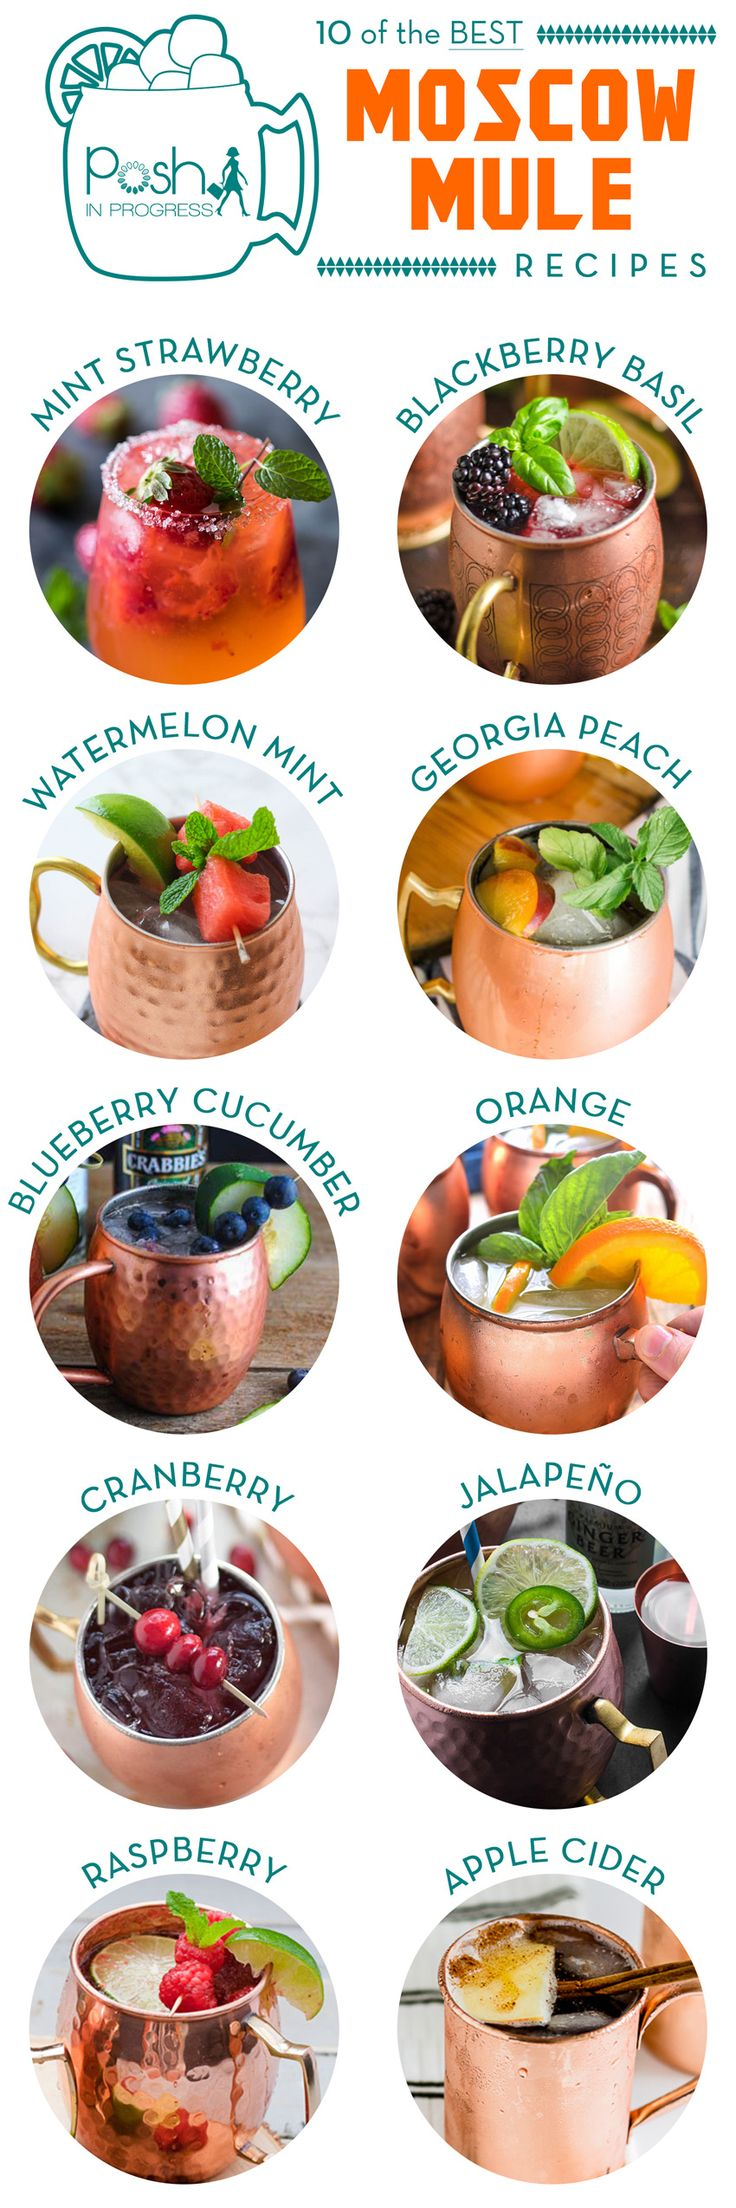 Have you ever heard of a Moscow Mule? It's a mix of ginger beer and any variety of alcohol and flavorings Here some yummy looking recipes I would like to try.